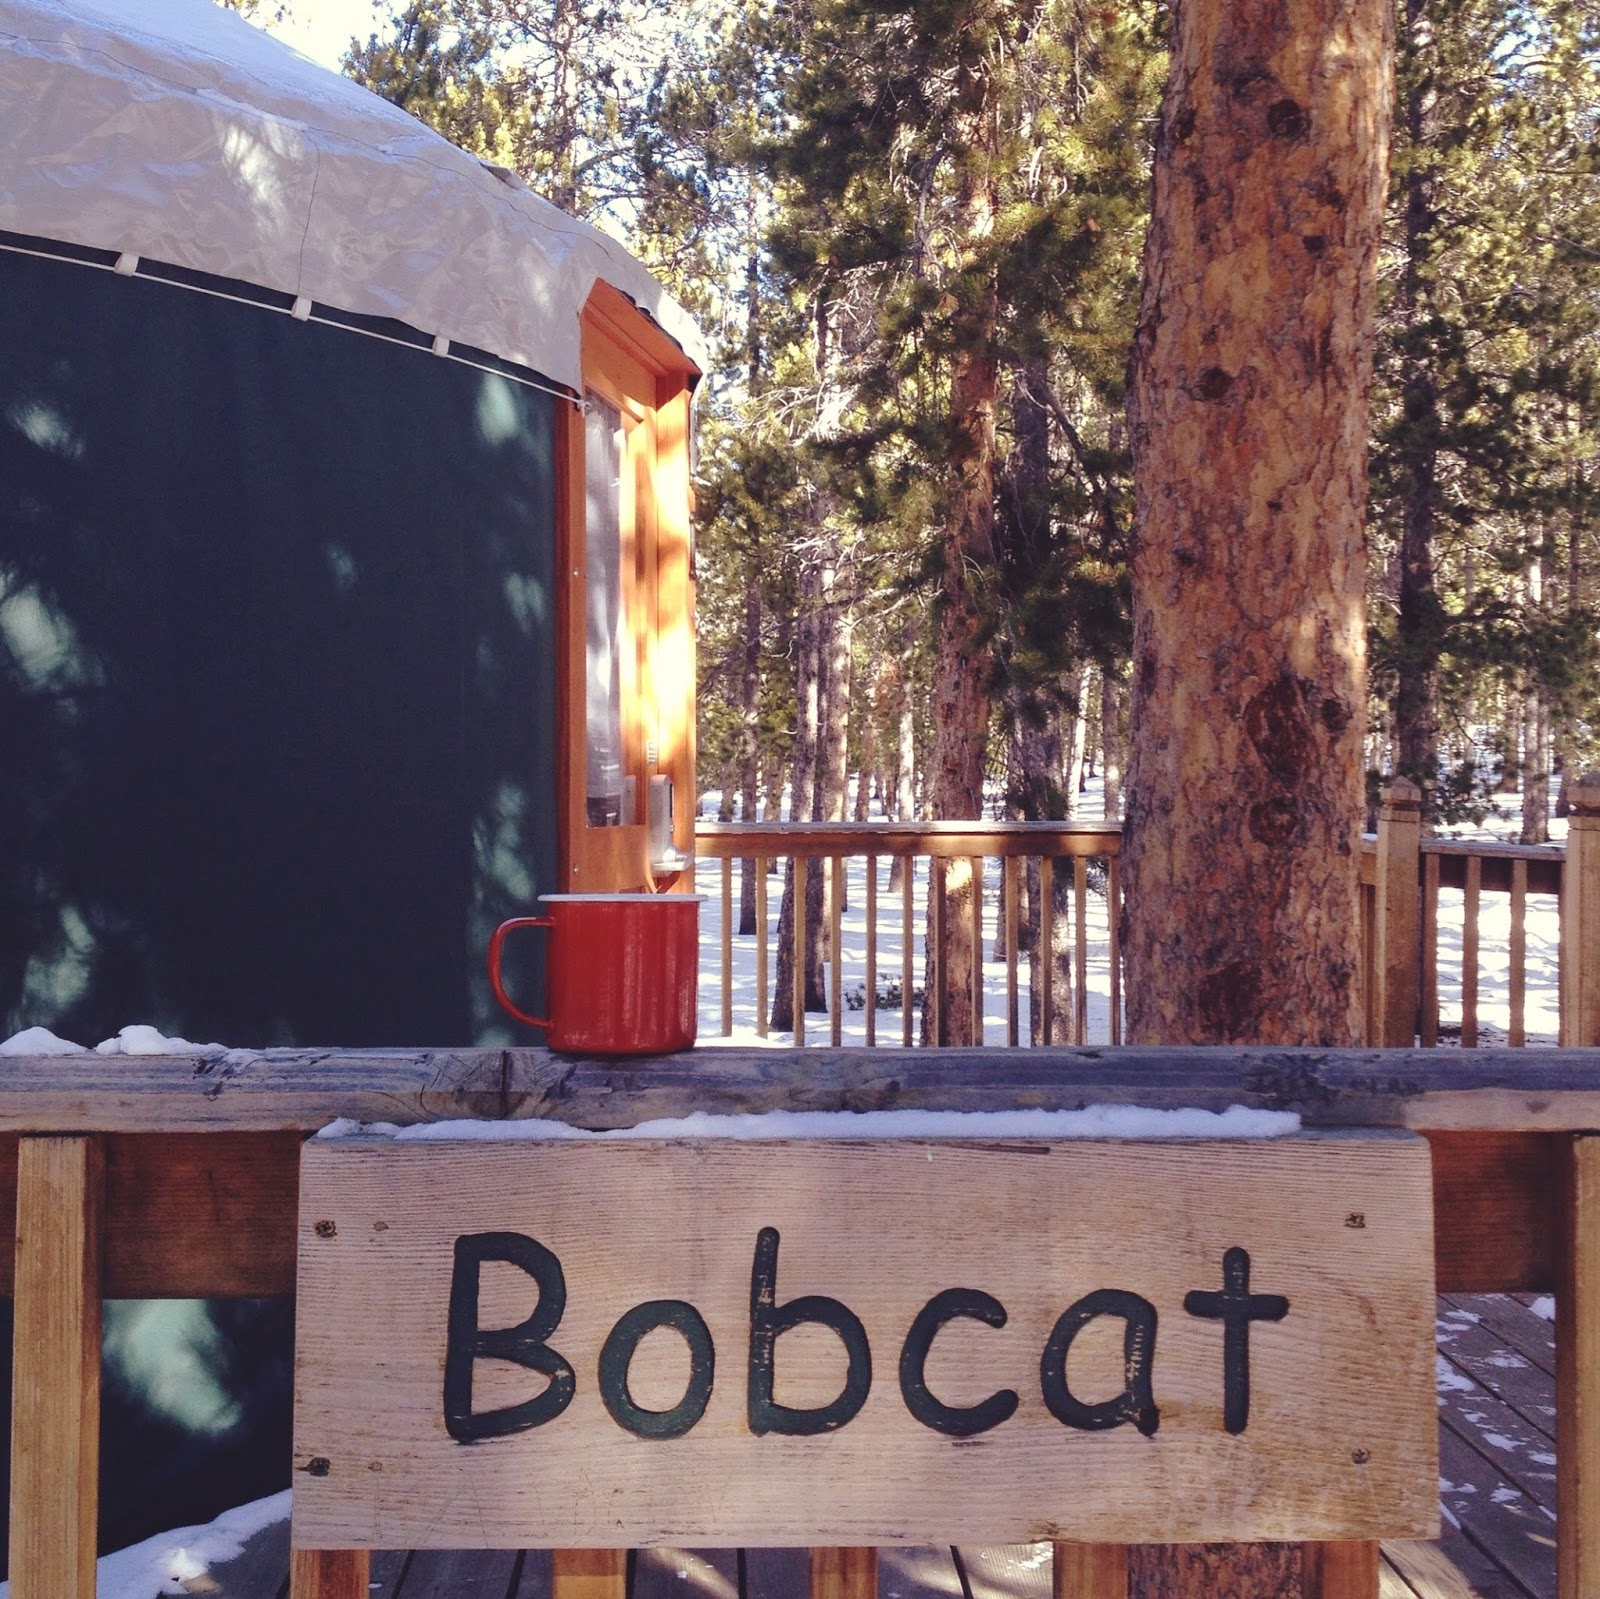 Popular A yurt is a funny thing It is a circular room tent shelter This one had a gas fireplace sets of bunk beds a table and chairs